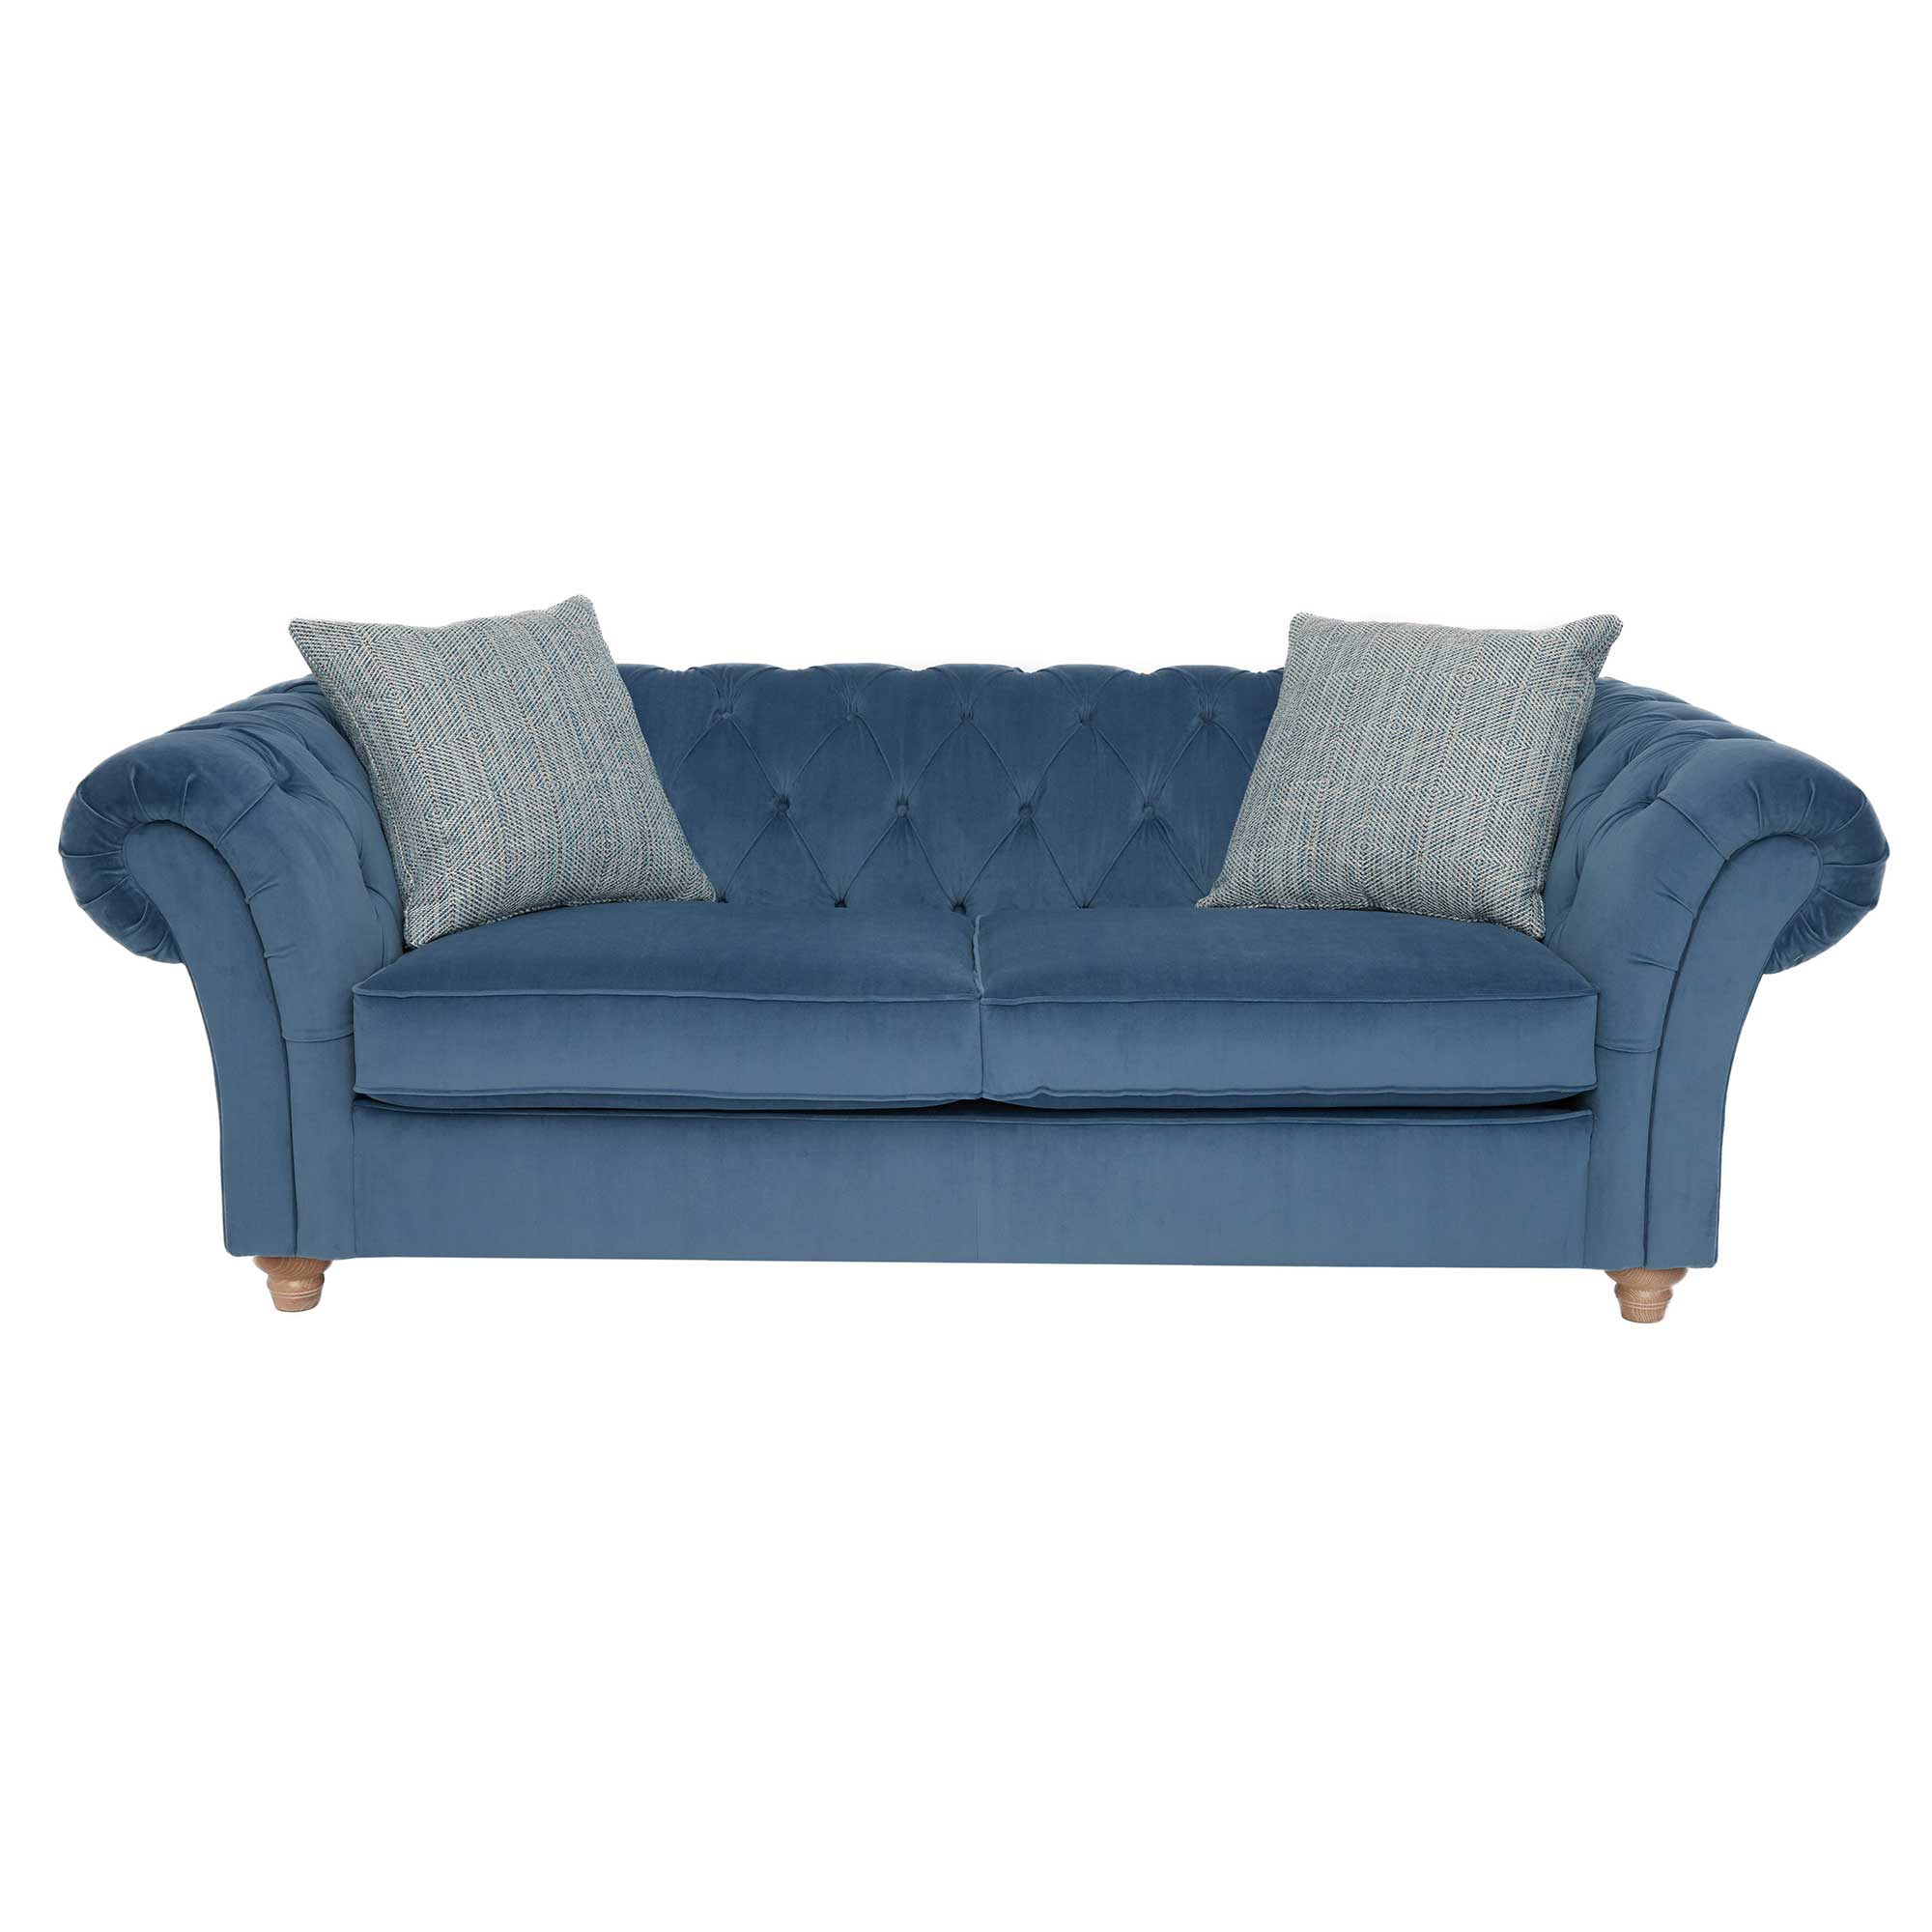 Willow And Hall Sofas : Probably Super Cool Large Chesterfield Intended For Maddox Oversized Sofa Chairs (Image 25 of 25)